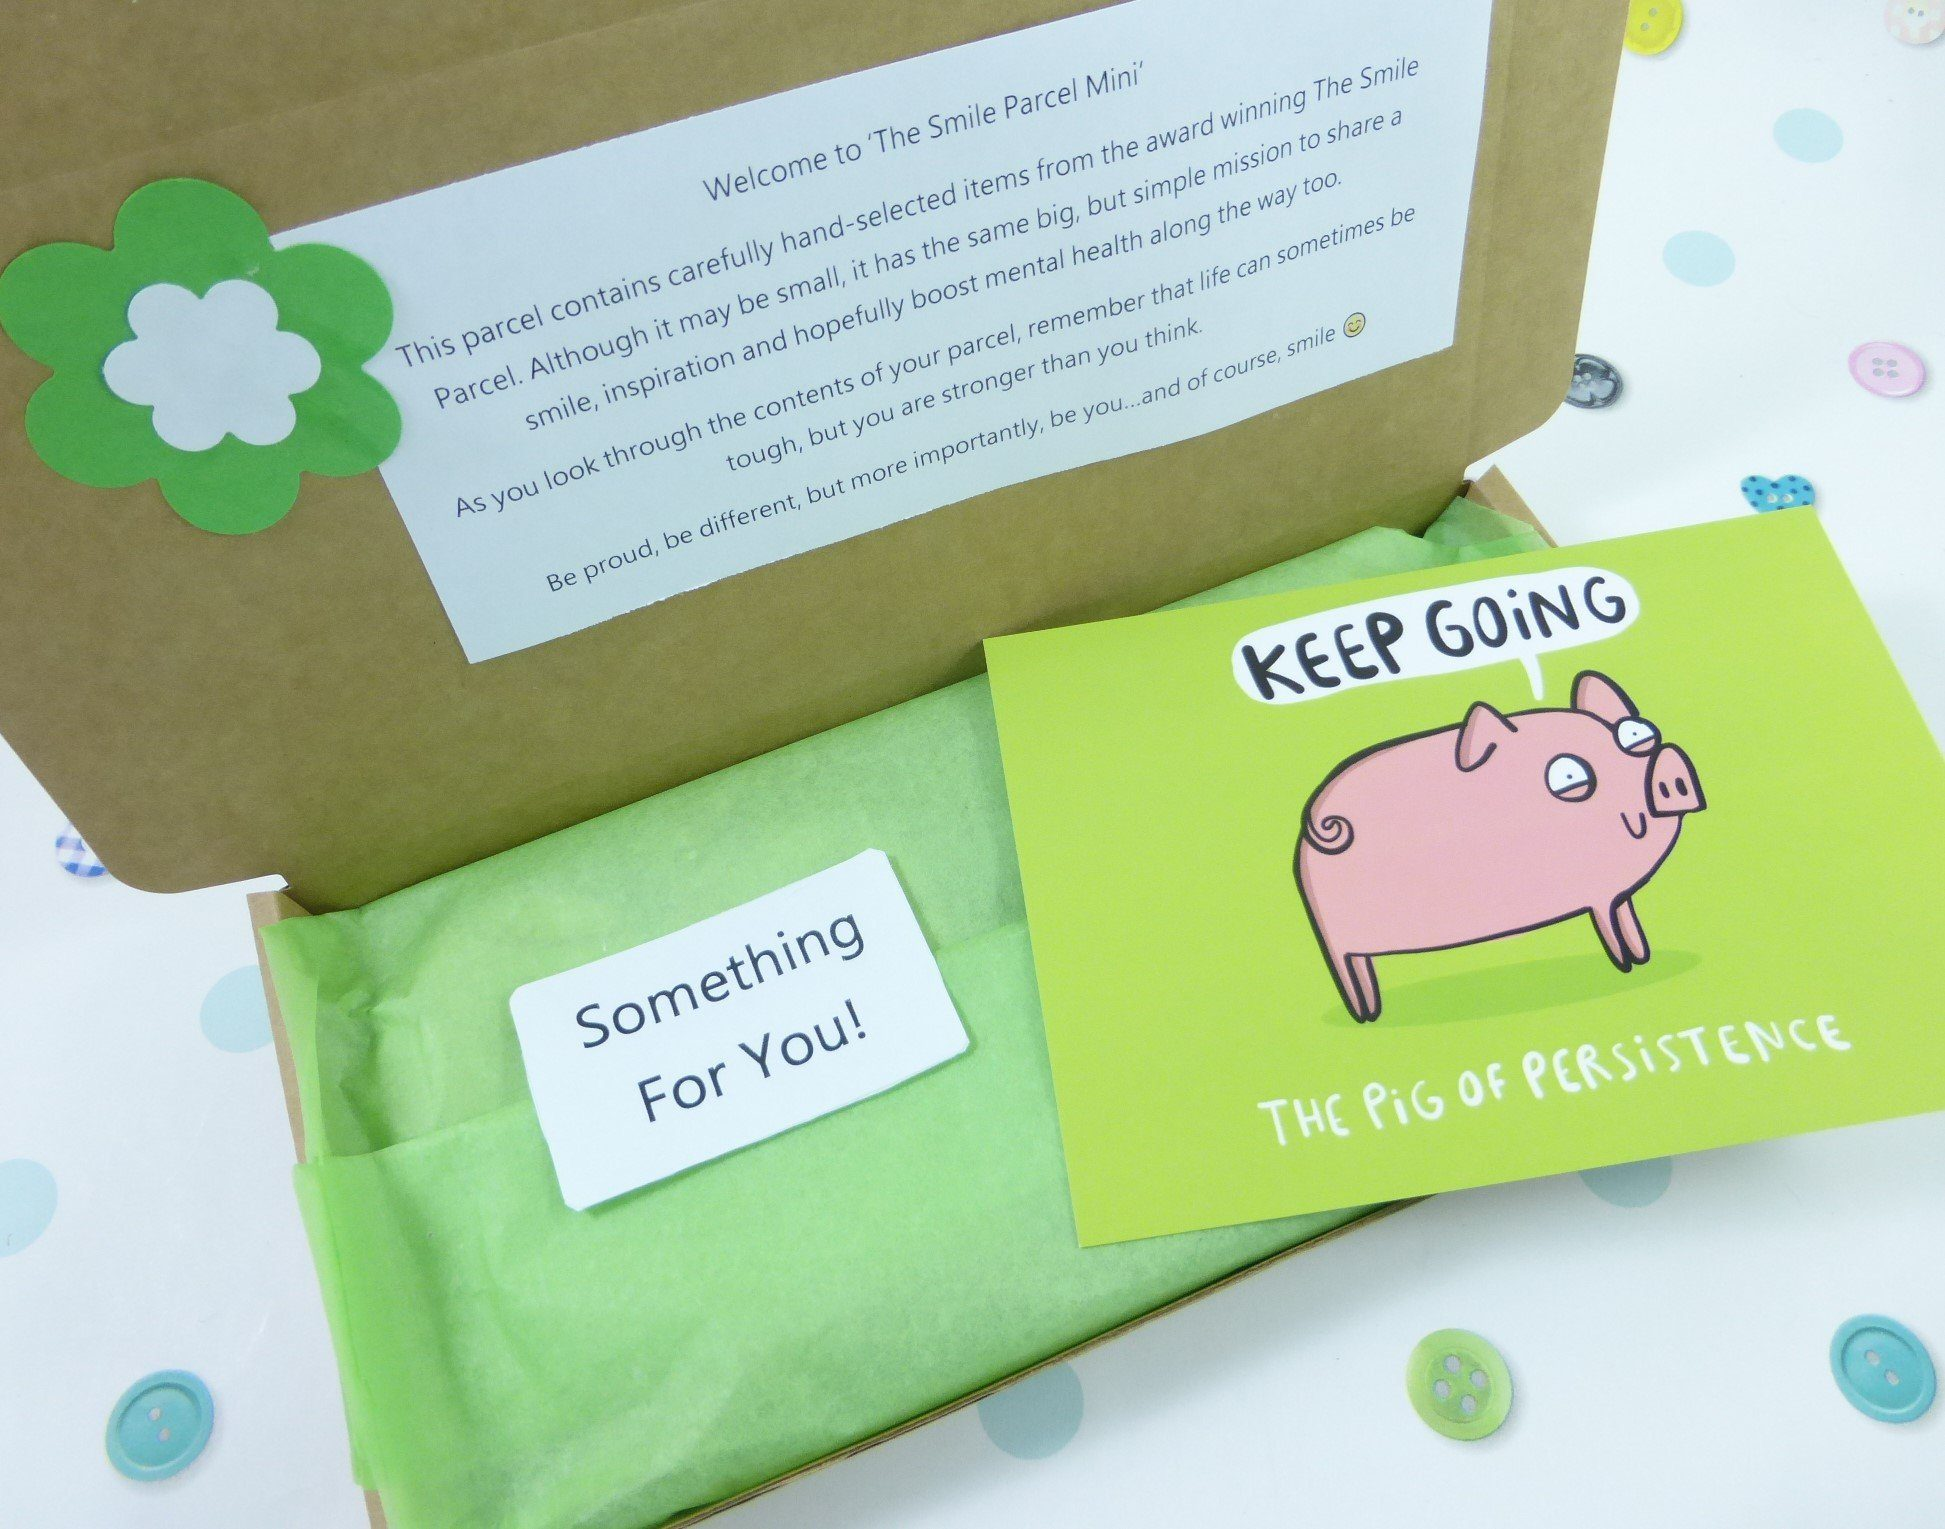 Green Letterbox Friendly, Pick Me Up Gift, The Smile Parcel Mini, Mental Health Gift, Wellbeing Box, Self Care Parcel, Happy Post Kind Shop 2